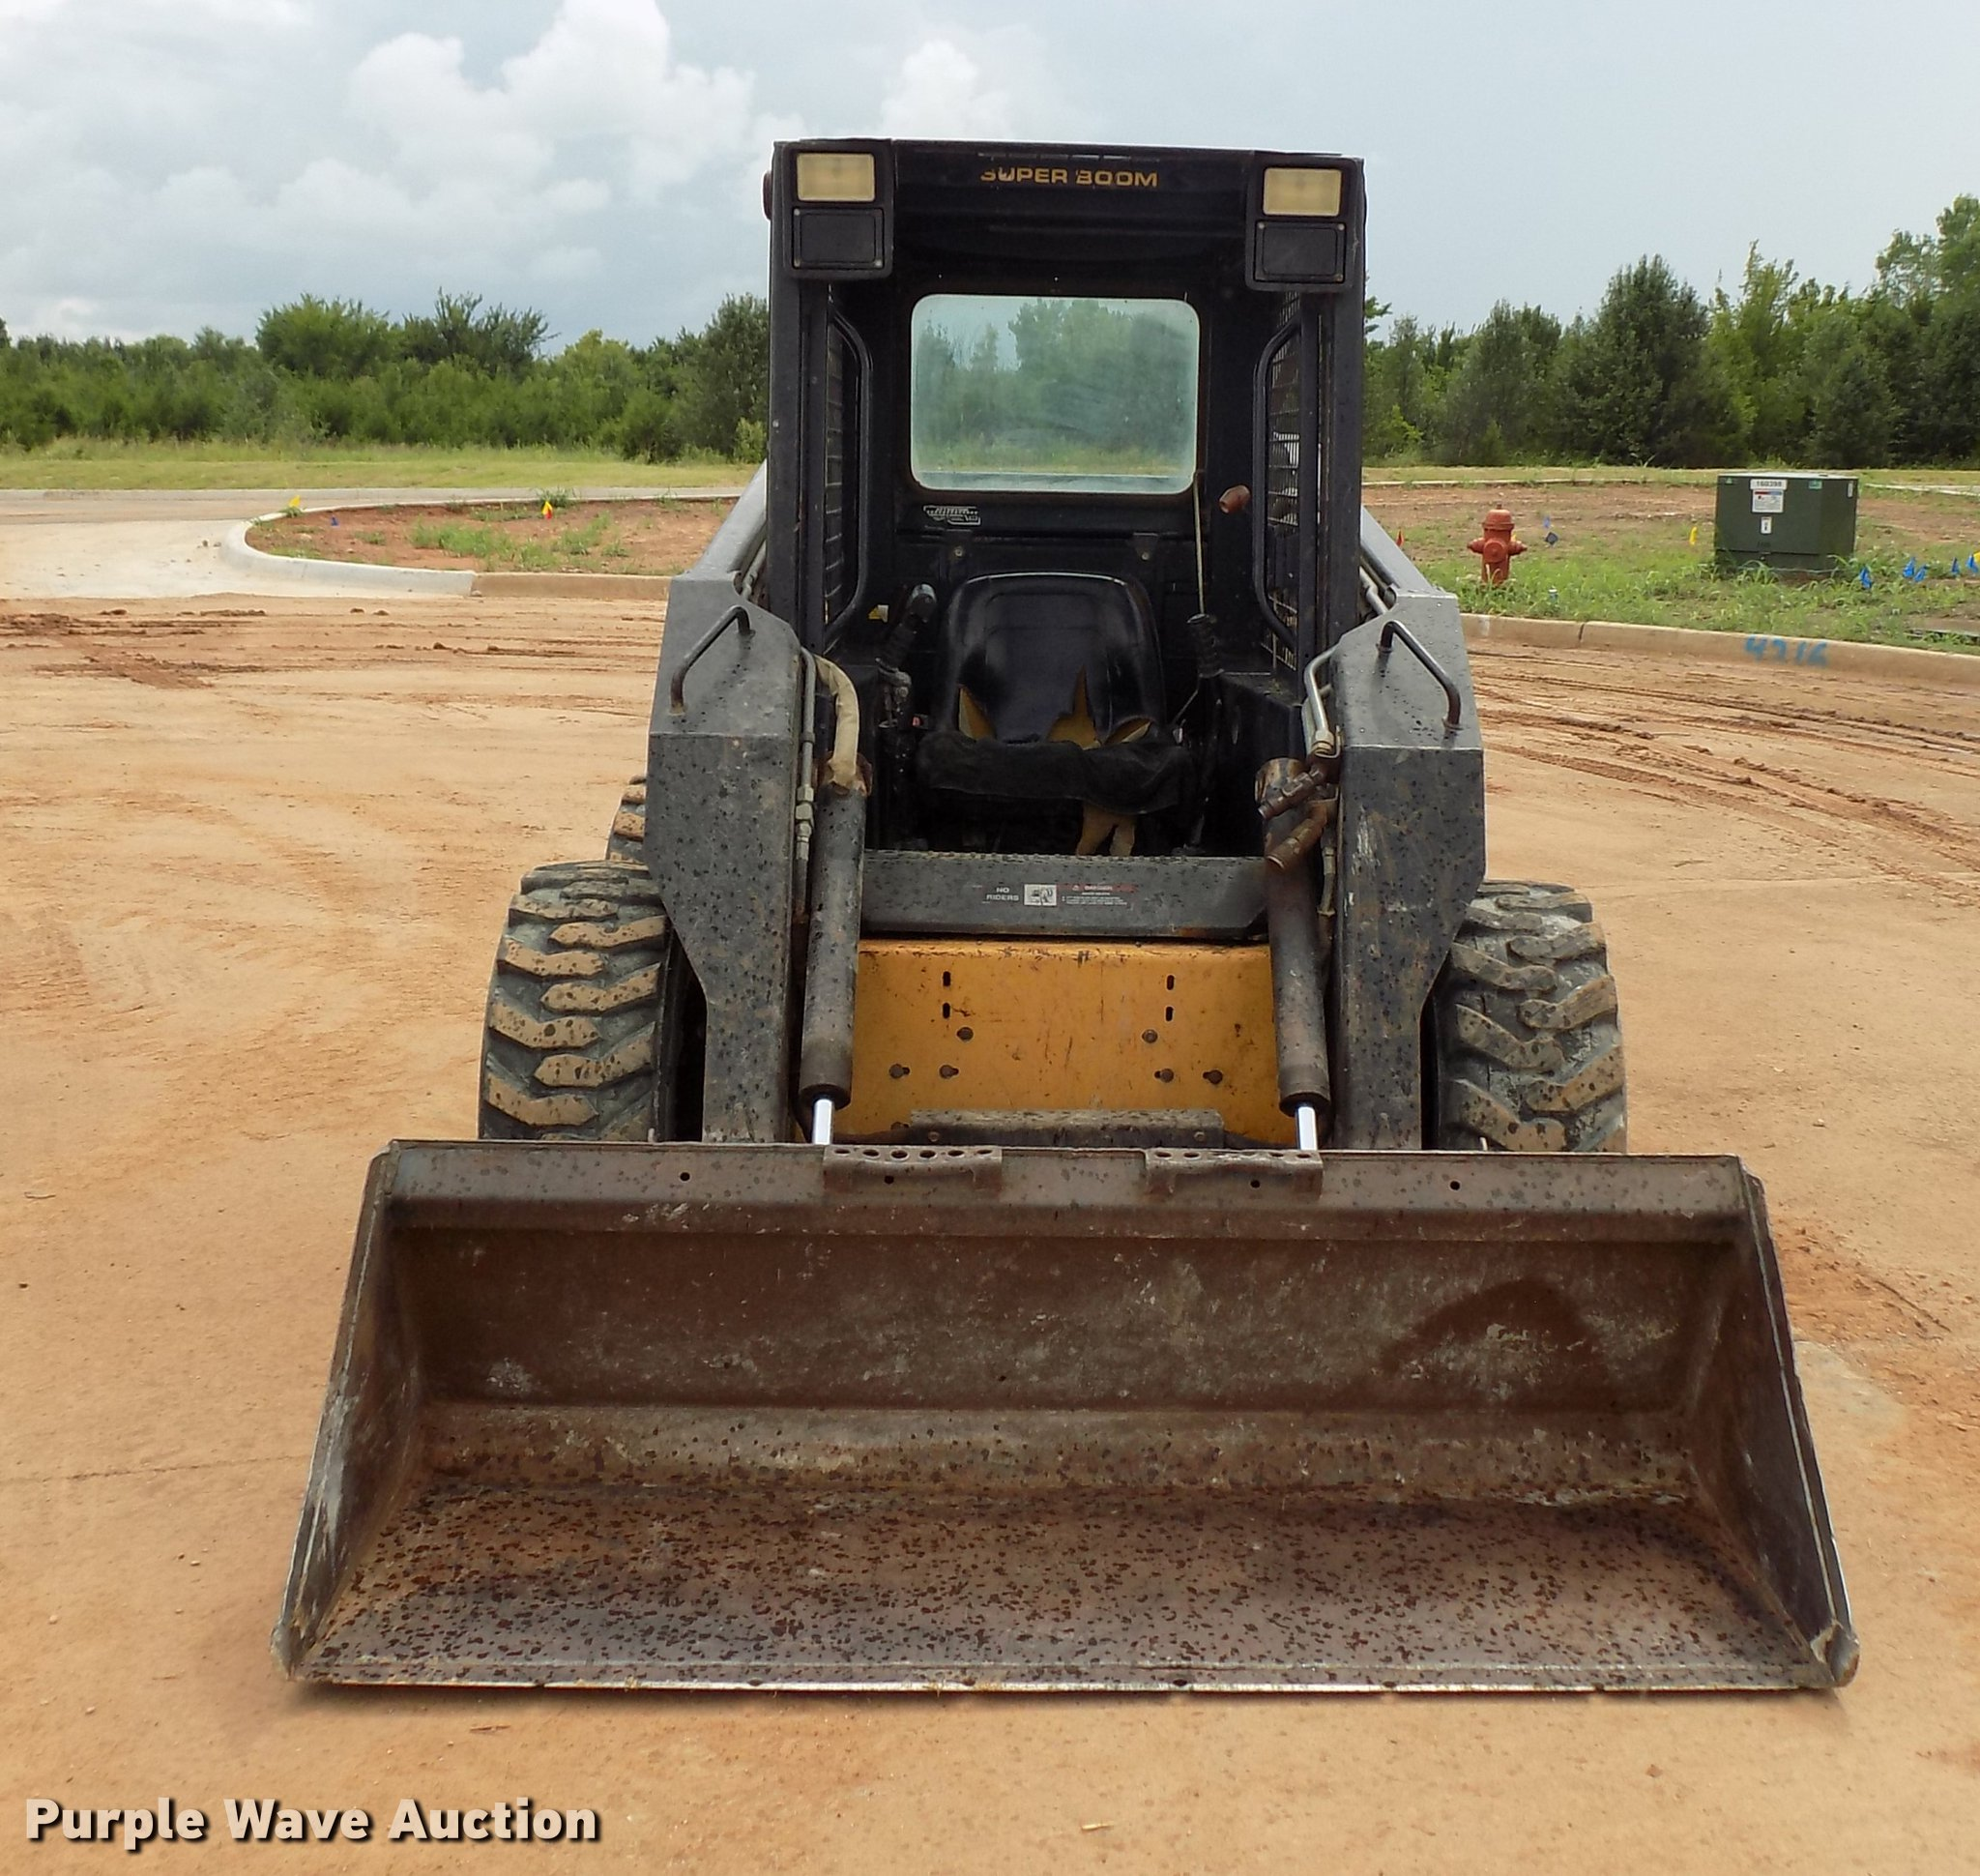 ... Holland LX885 Turbo skid steer Full size in new window ...